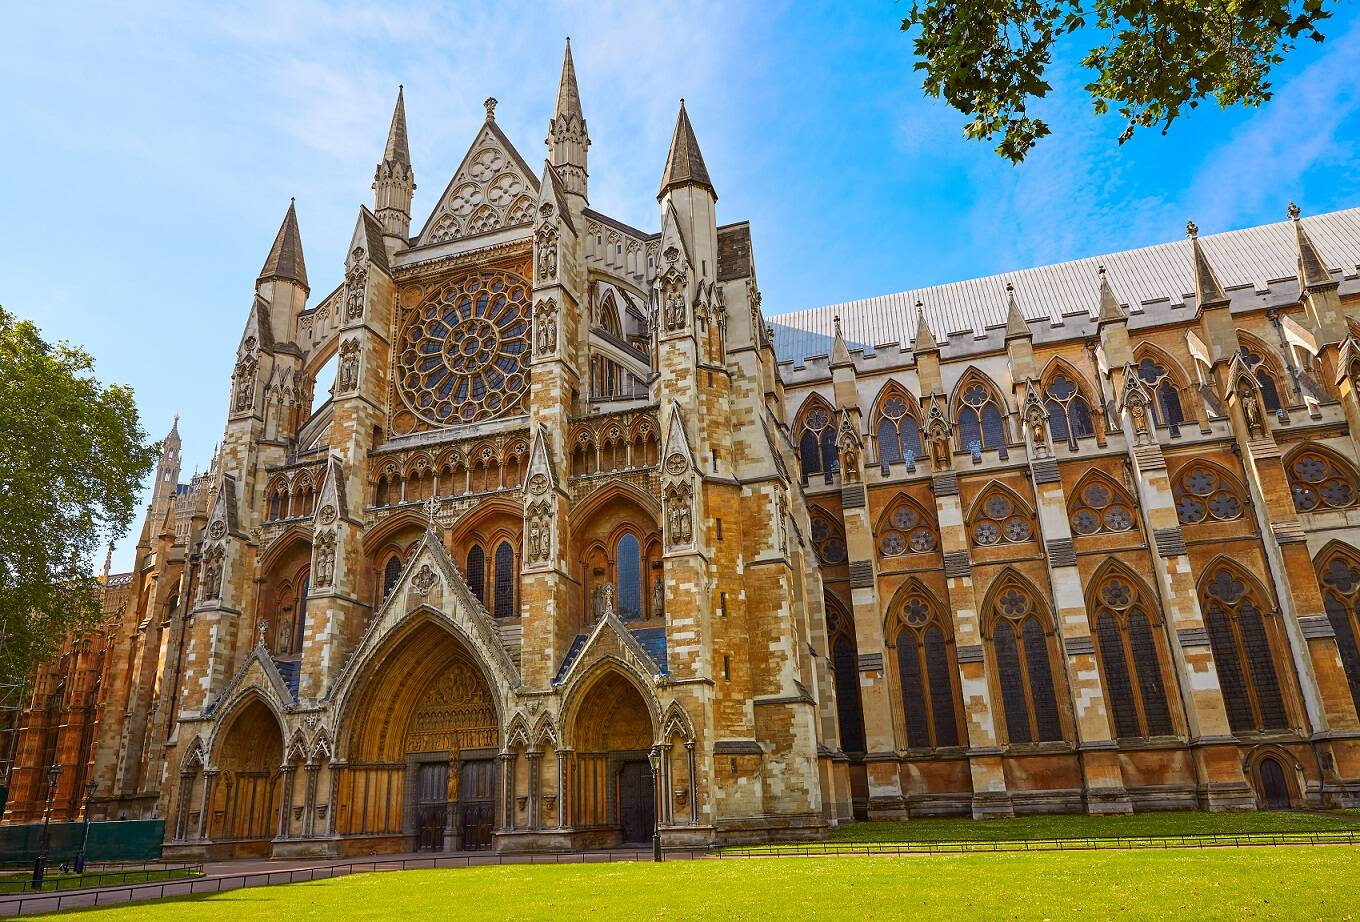 Who is buried at Westminster Abbey